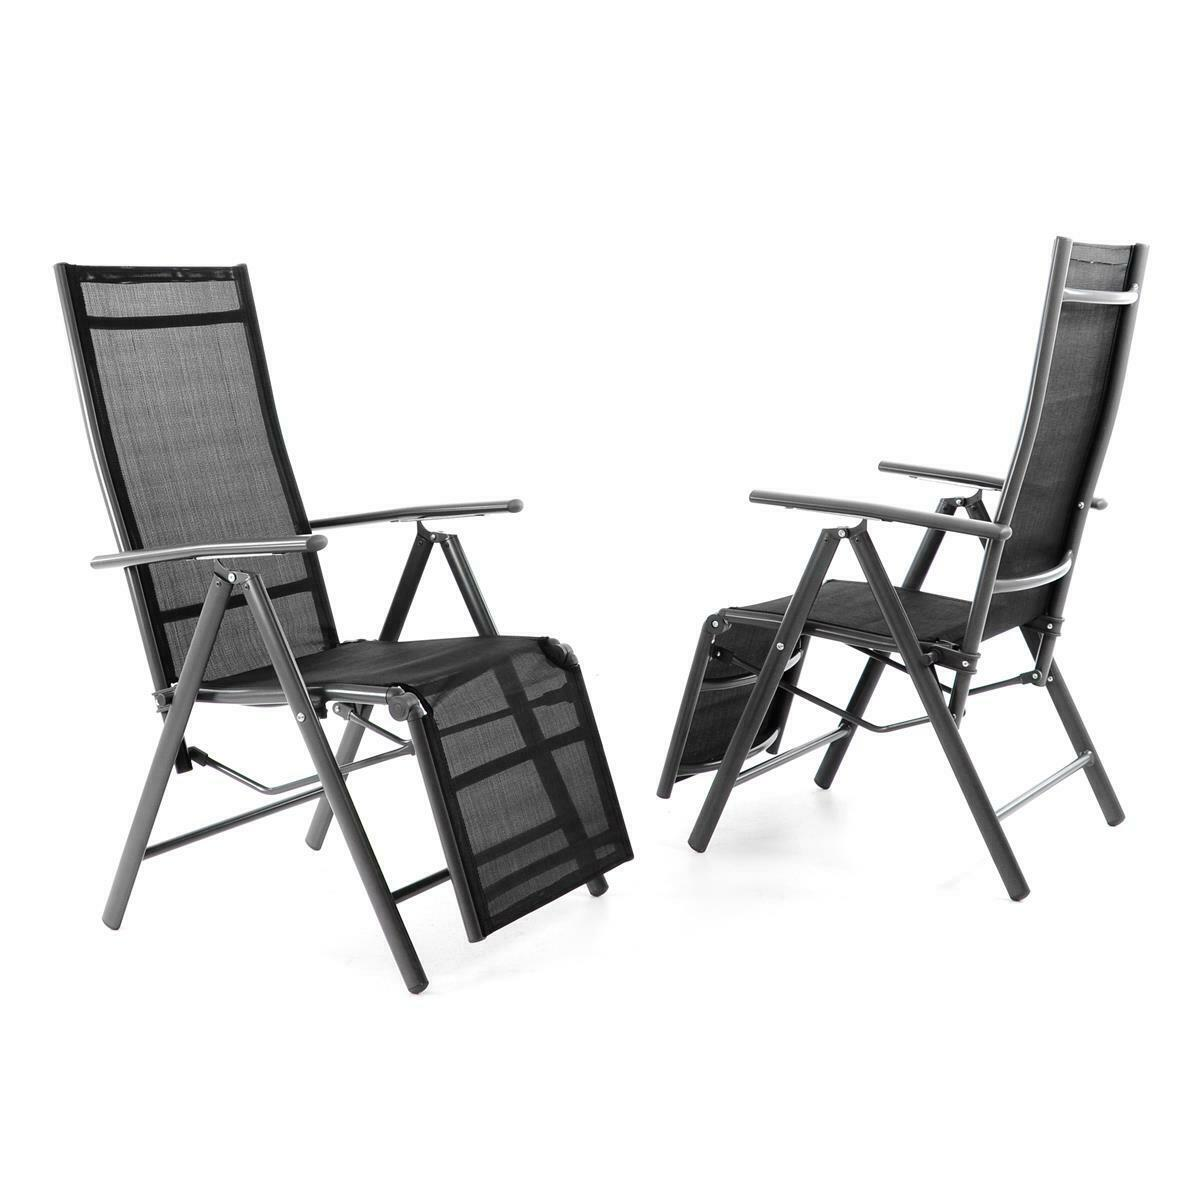 2er set alu liegestuhl klappstuhl schwarz mit fu st tze garten rahmen anthrazit eur 84 85. Black Bedroom Furniture Sets. Home Design Ideas